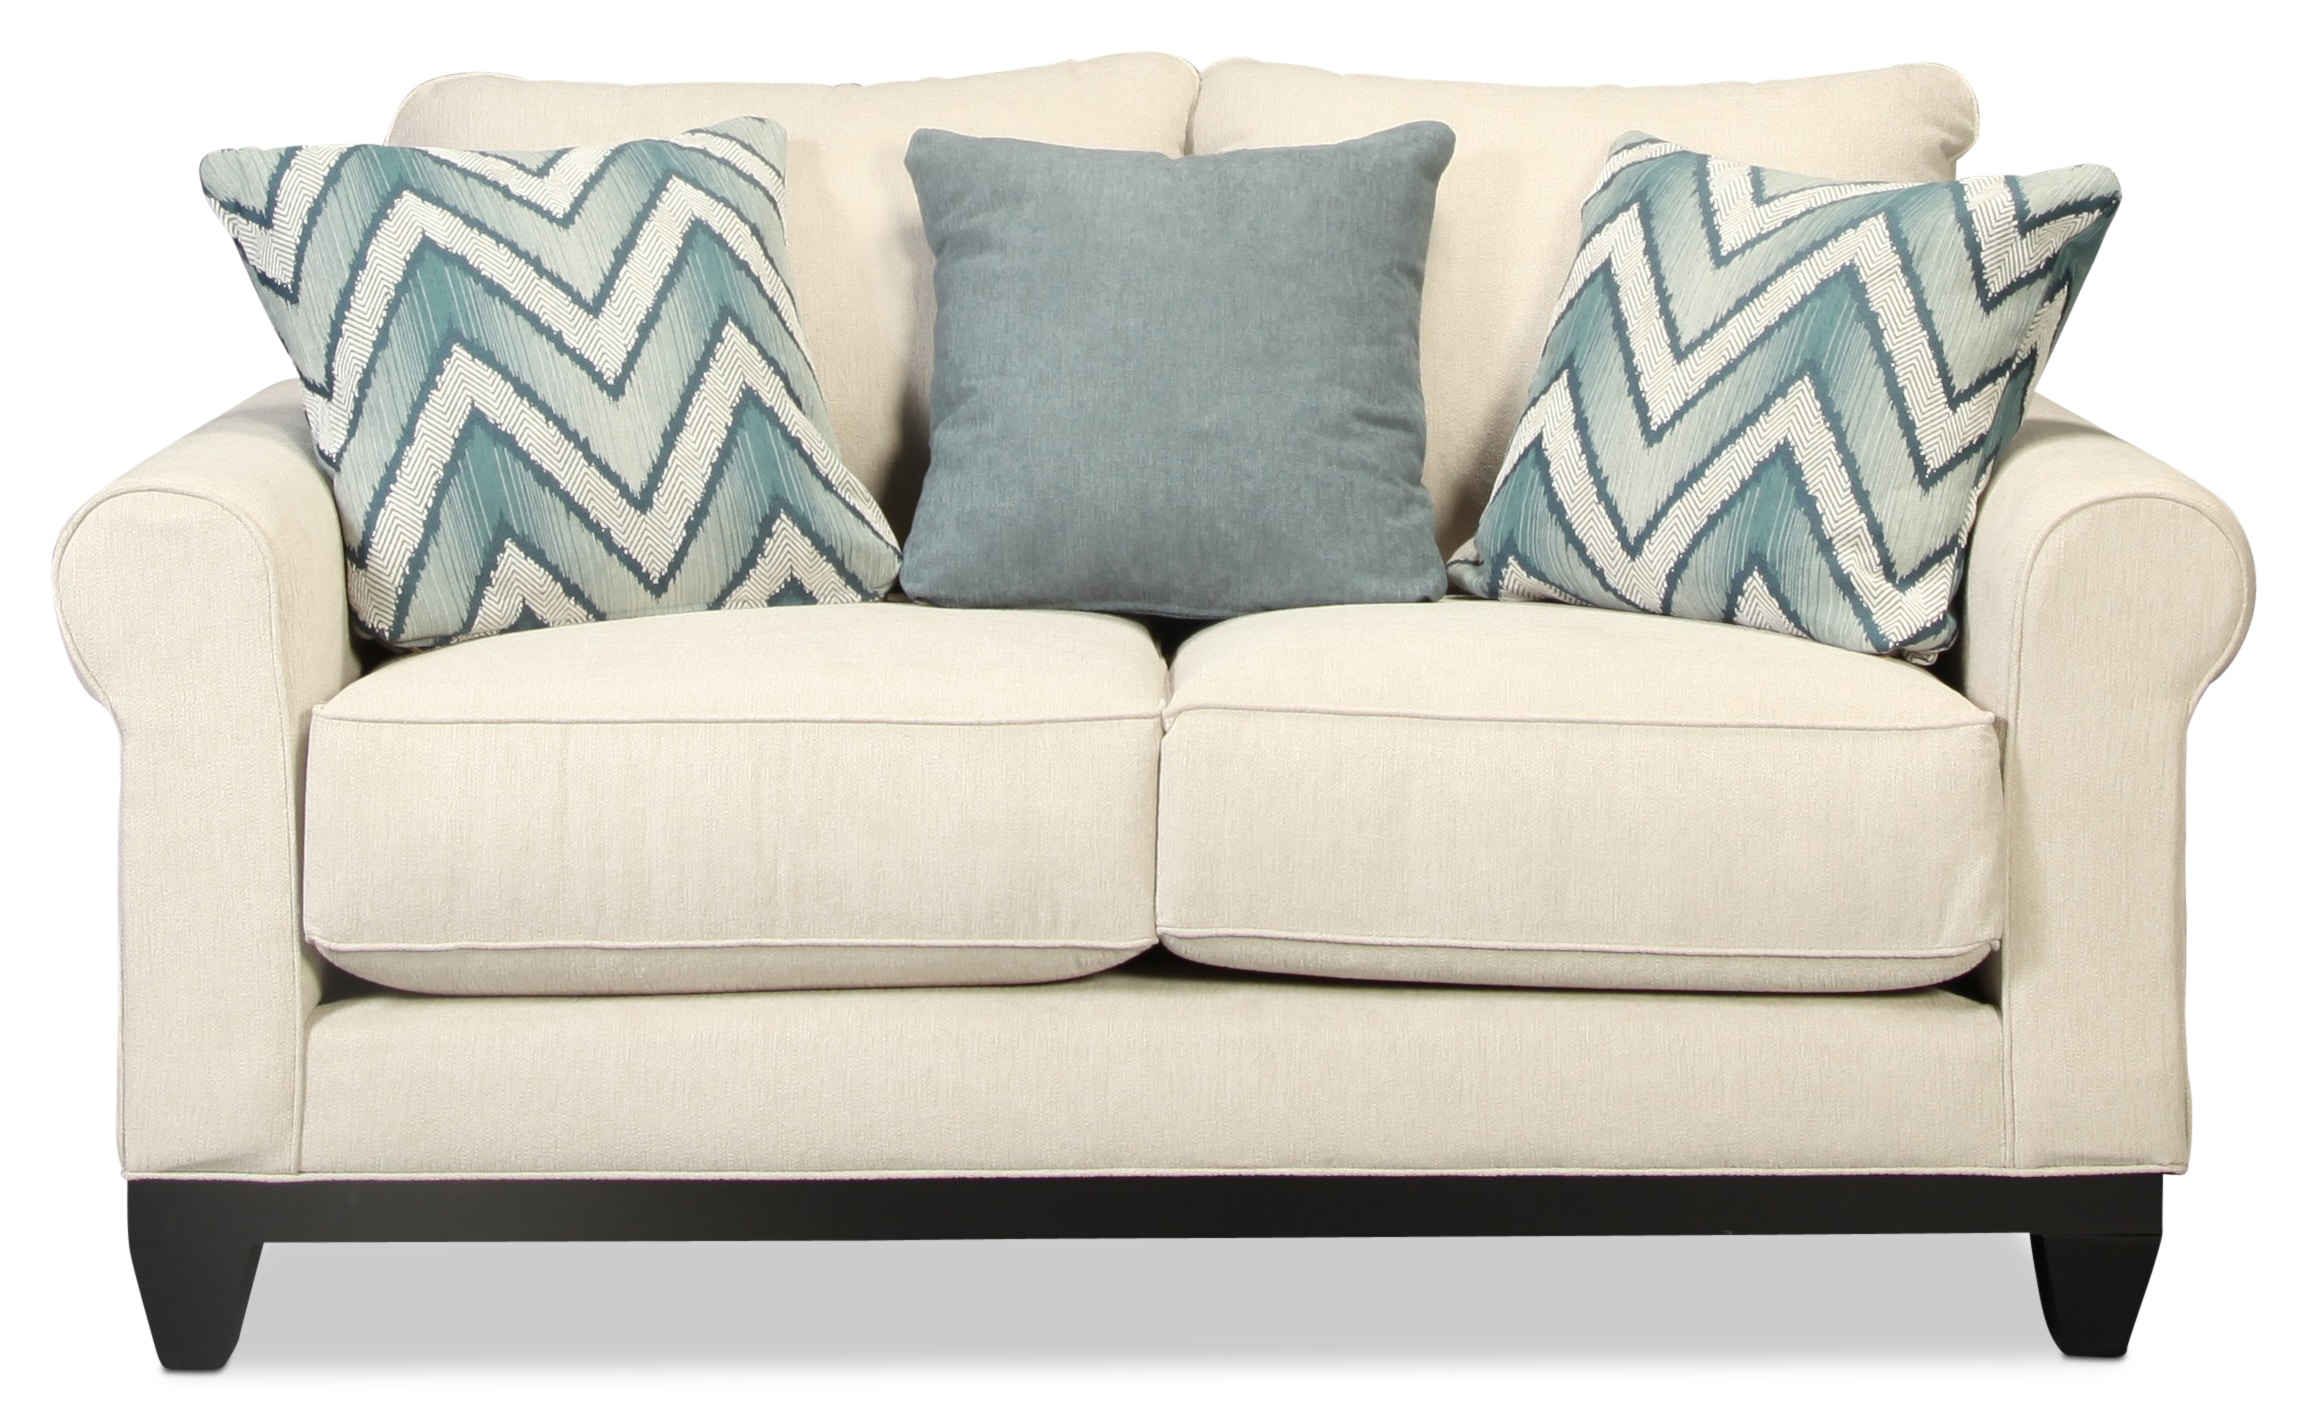 Sunset Beach Loveseat - Flax